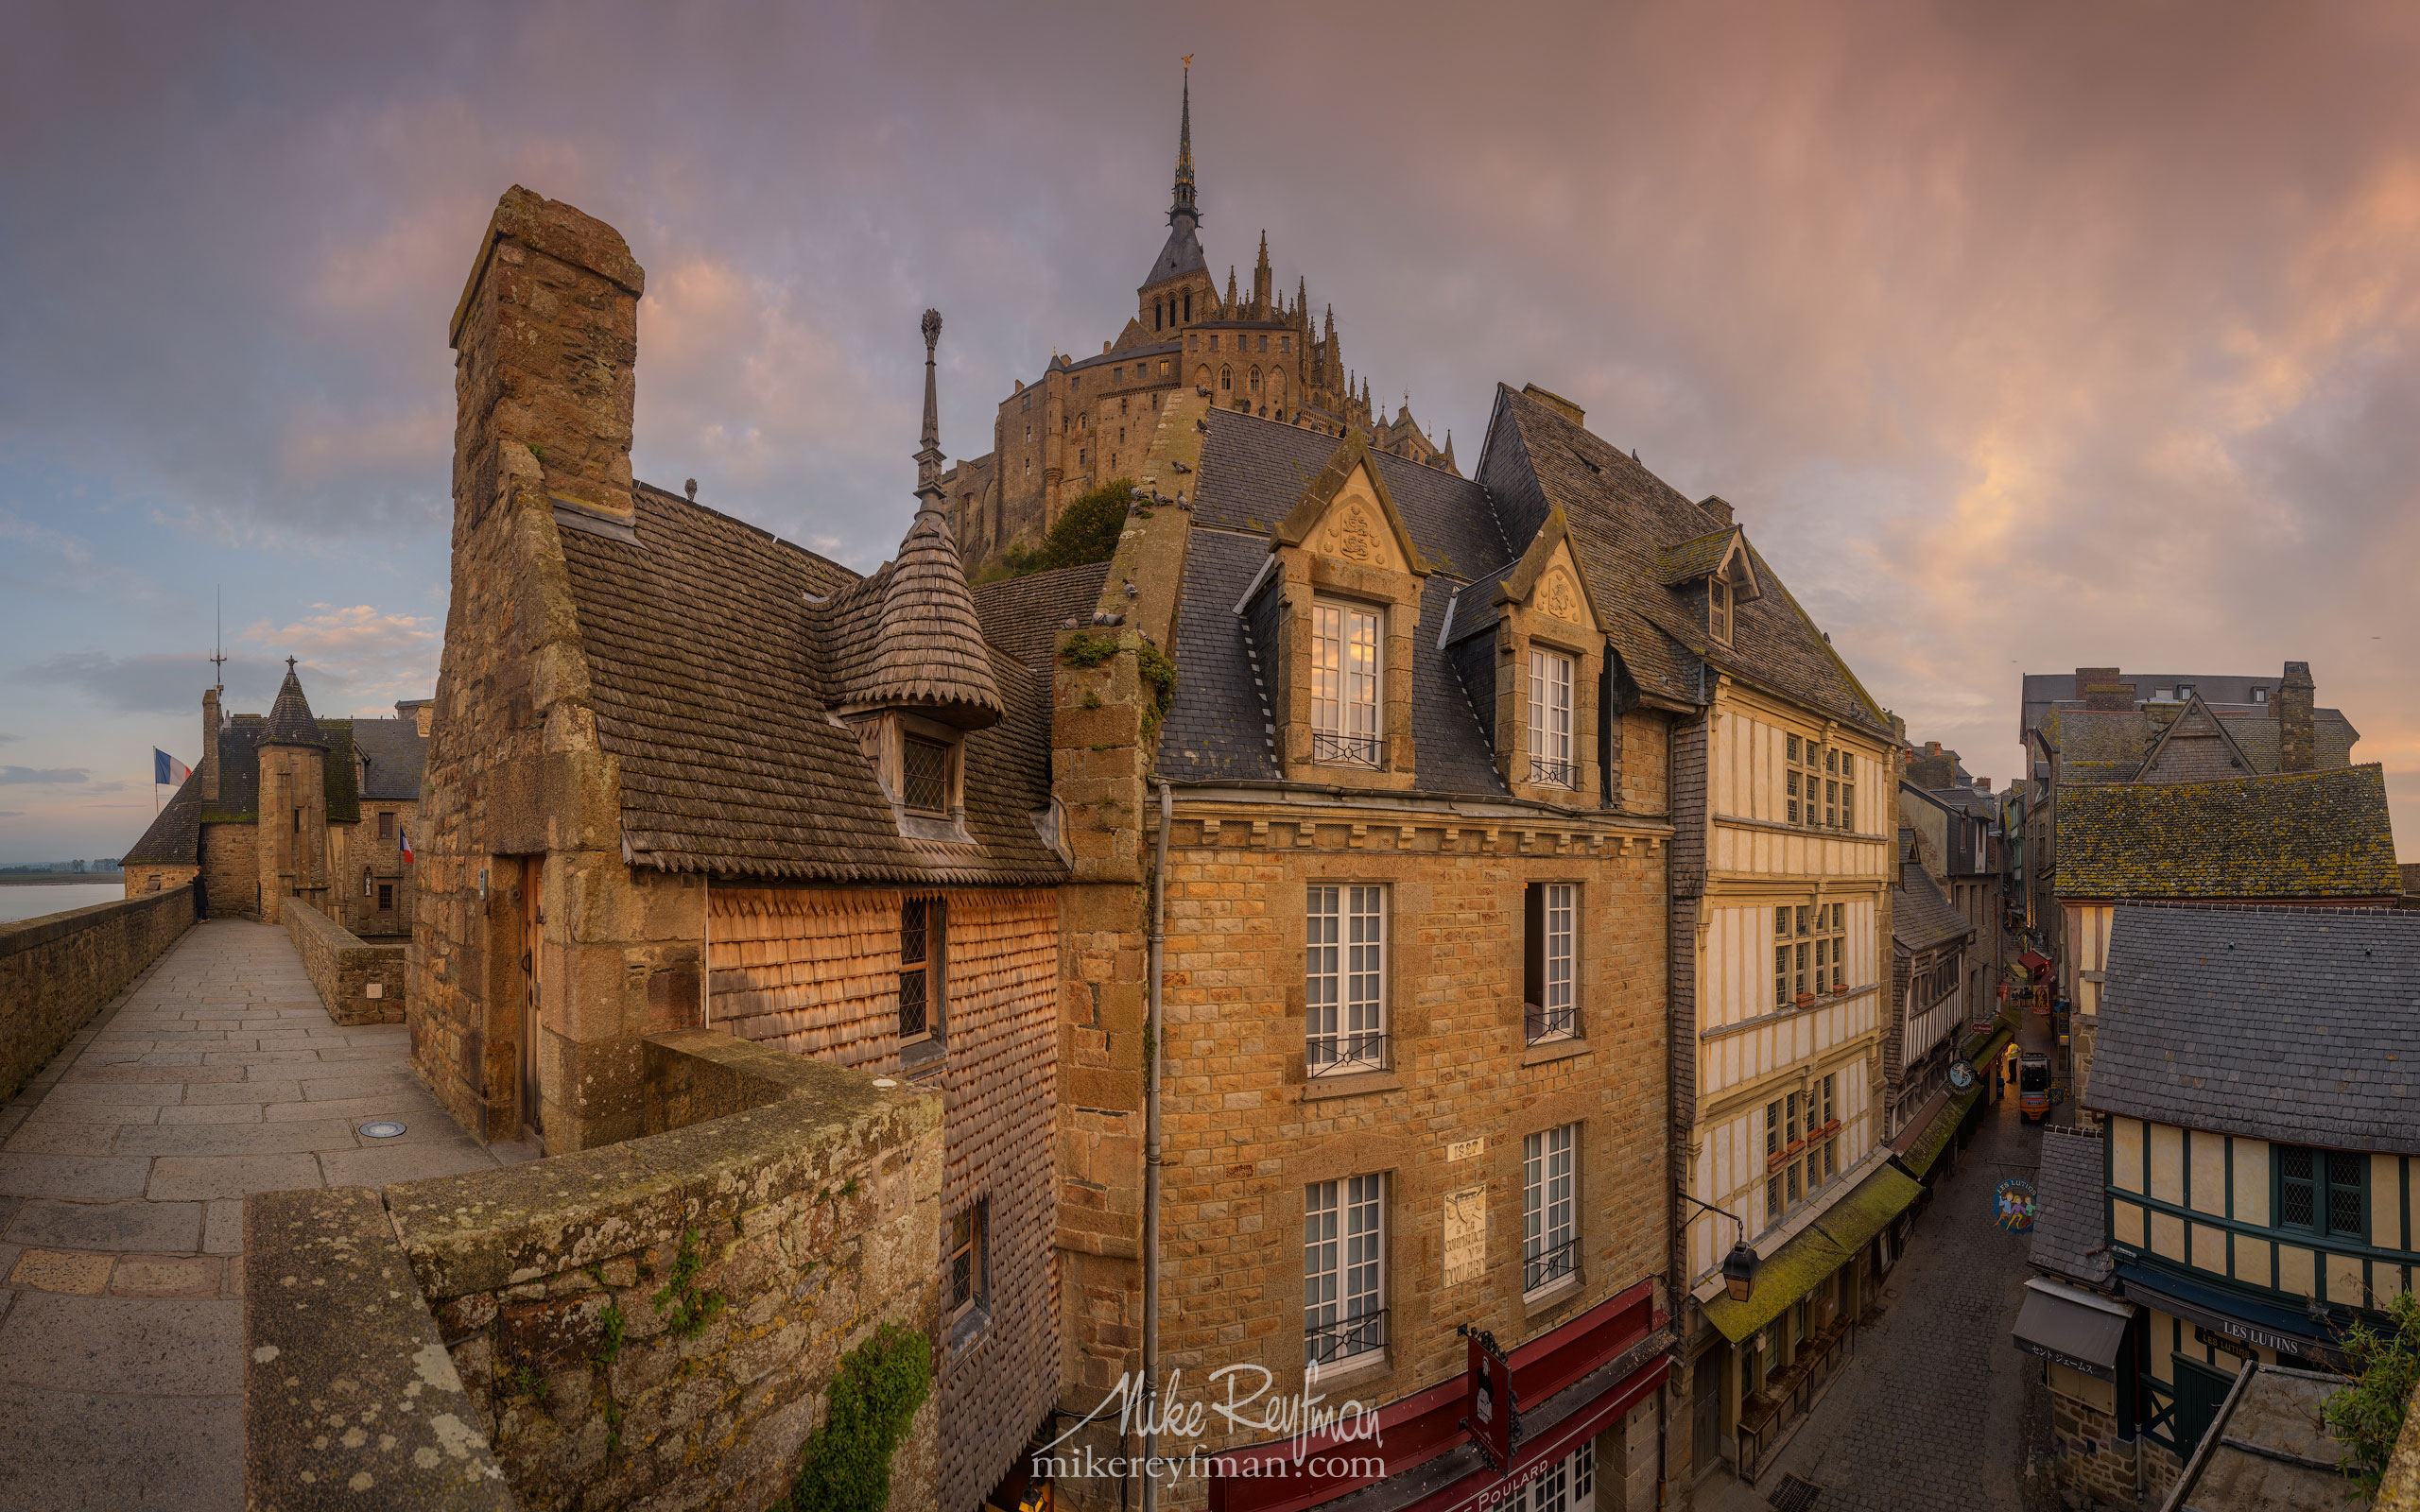 Le Mont-Saint-Michel Island and Benedictine Abbey. Normandy, France SM_MR50A1186-Pano-3x2 - Le Mont Saint Michel Island and Benedictine Abbey, Normandy, France - Mike Reyfman Photography